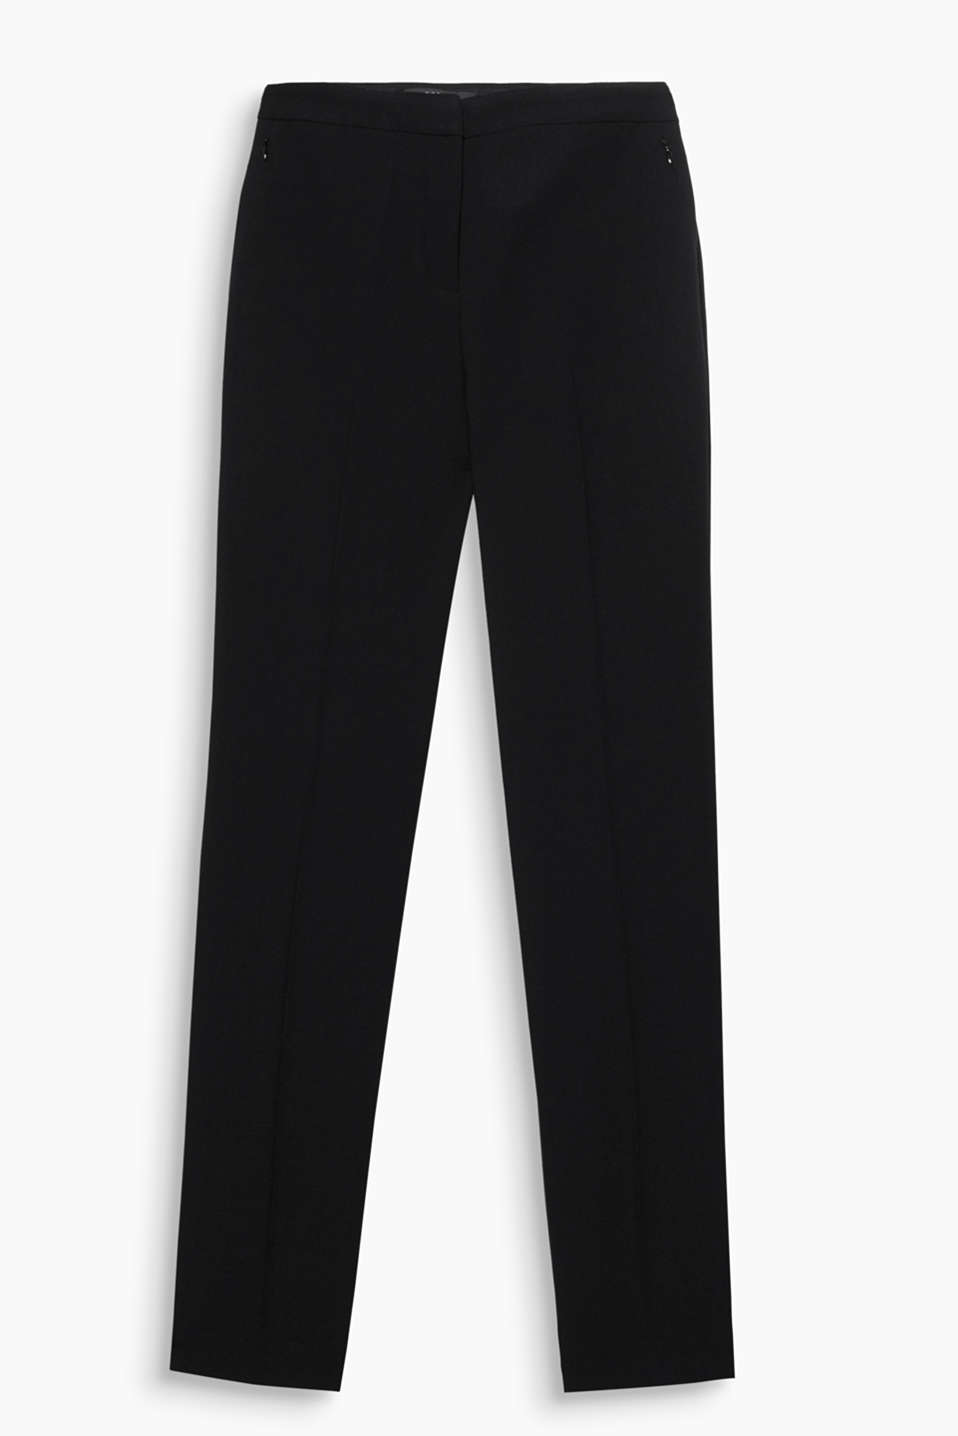 These stretch trousers with pressed pleats and zip pockets are given a beautiful line by the straight hem width + ankle length!